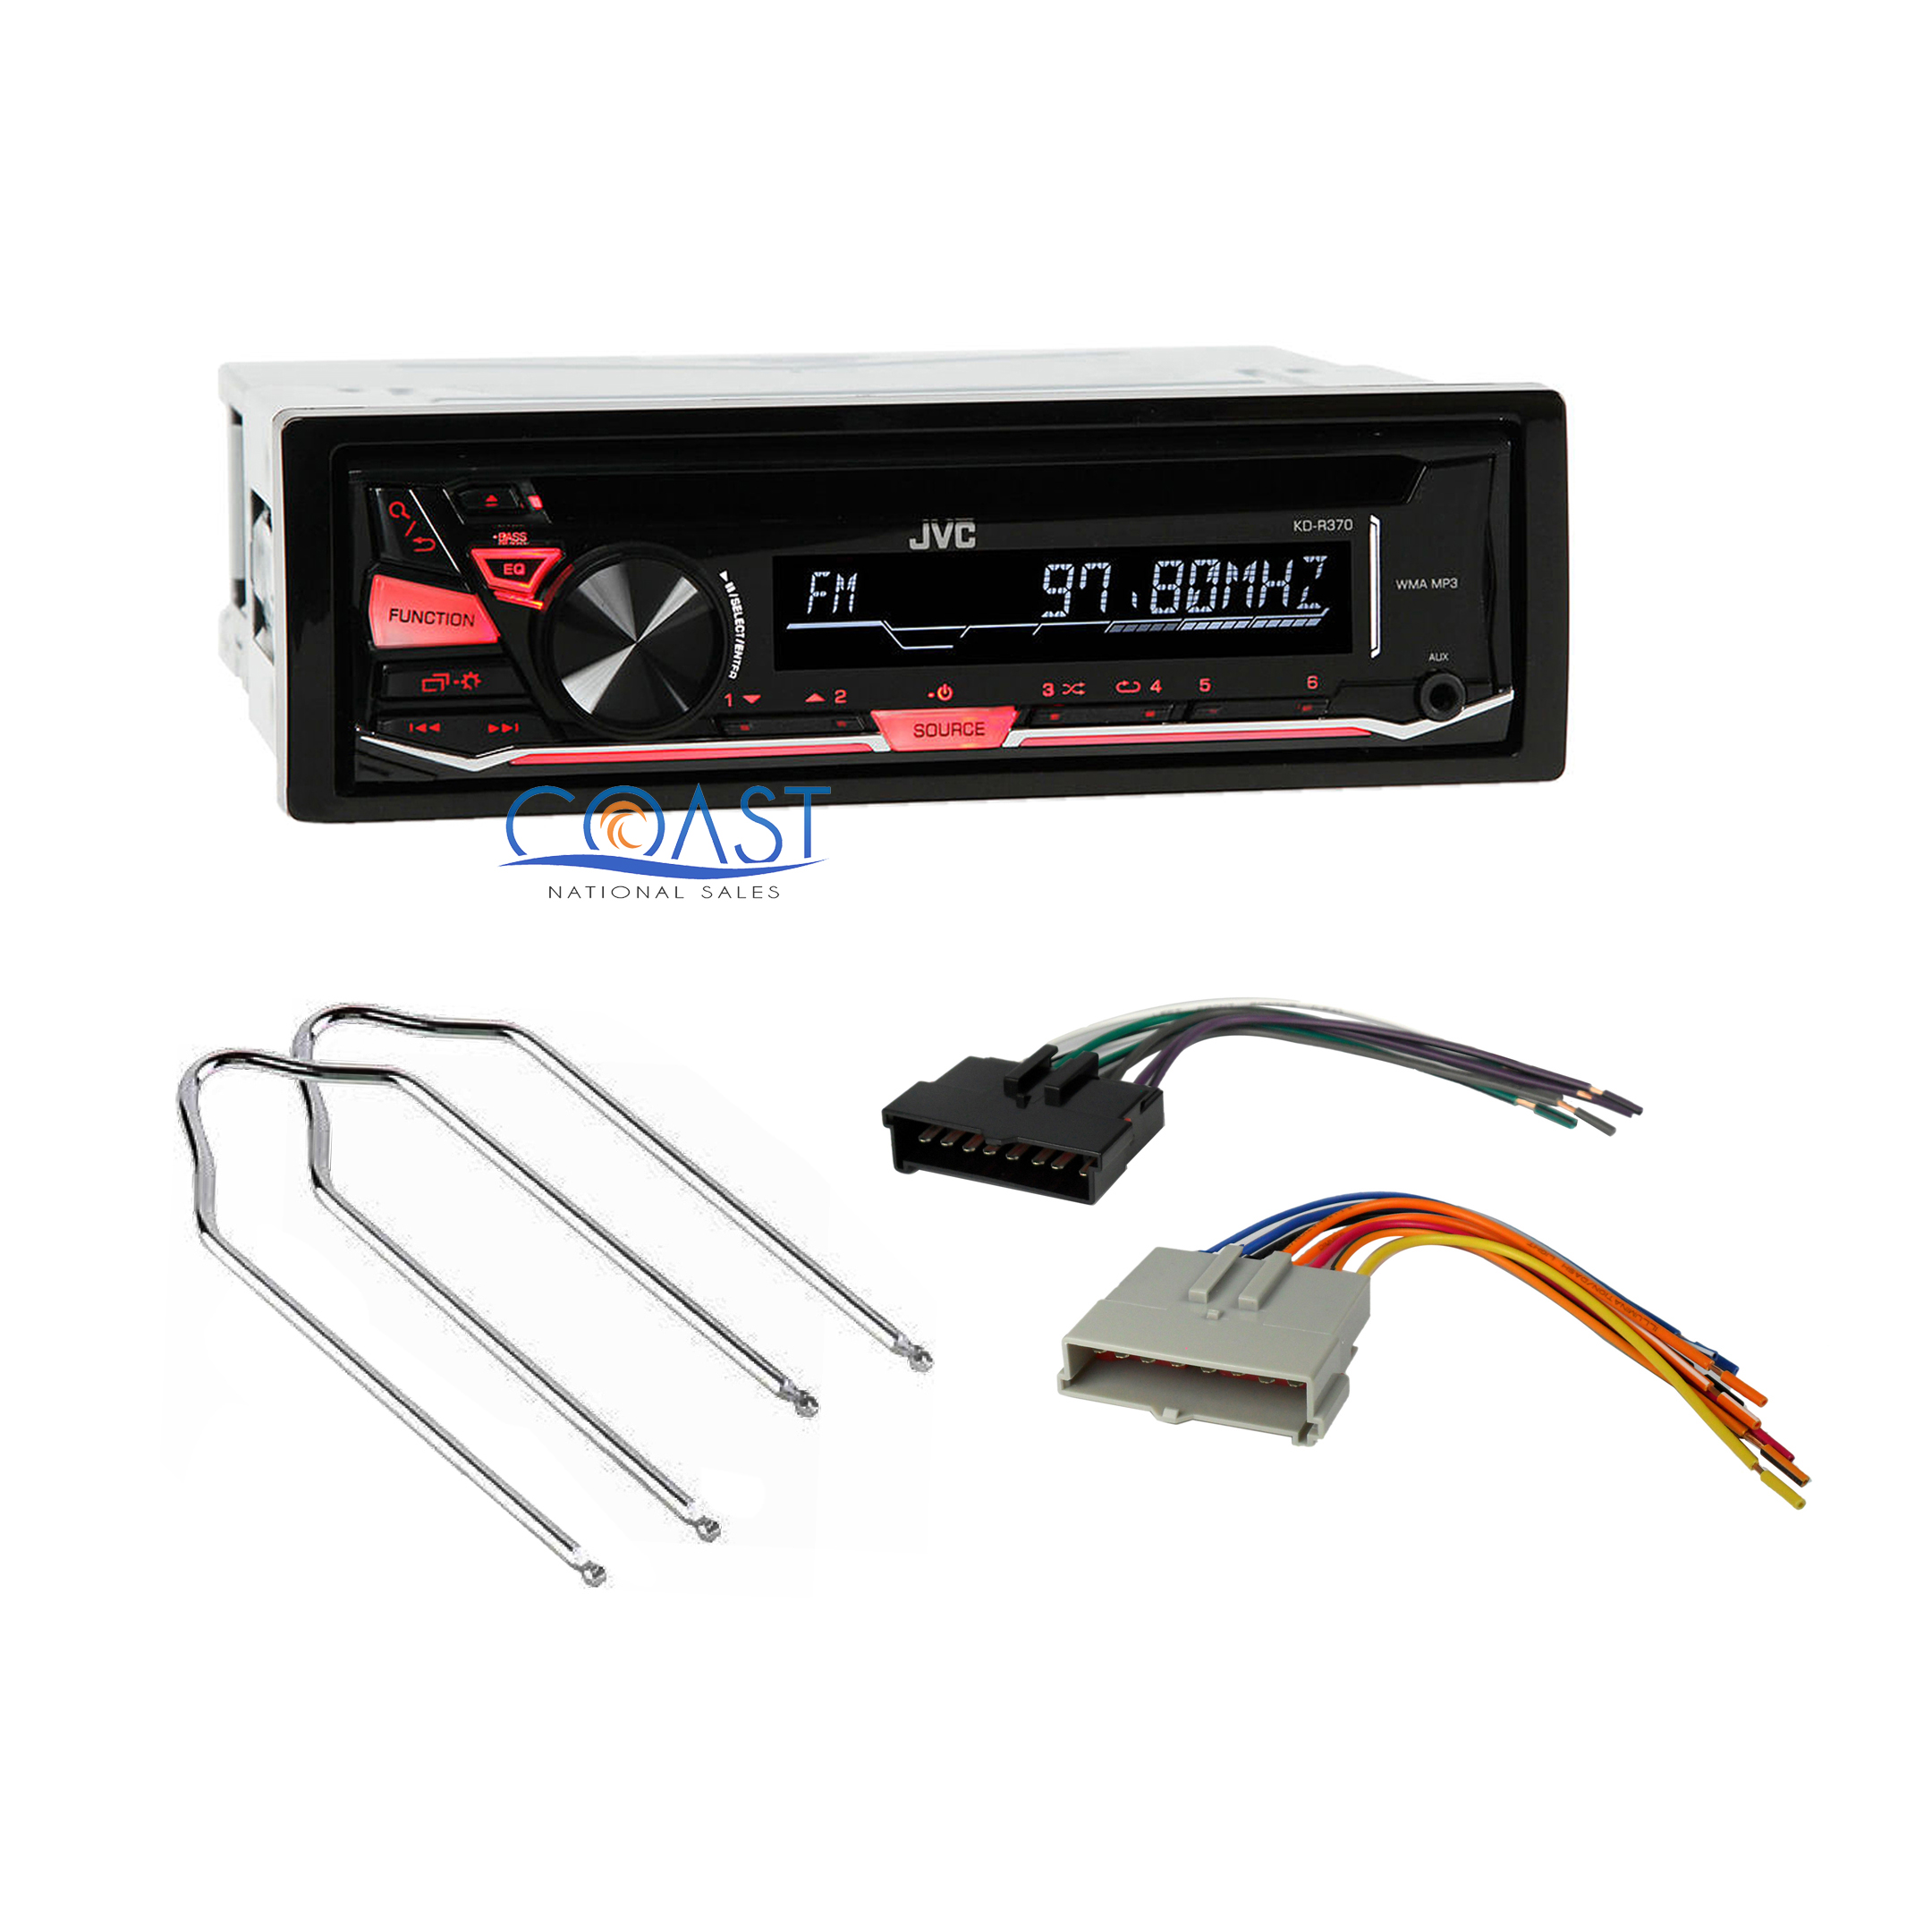 Jvc Car Radio Stereo Wire Harness Radio Remover For Ford Mercury Mazda Kd